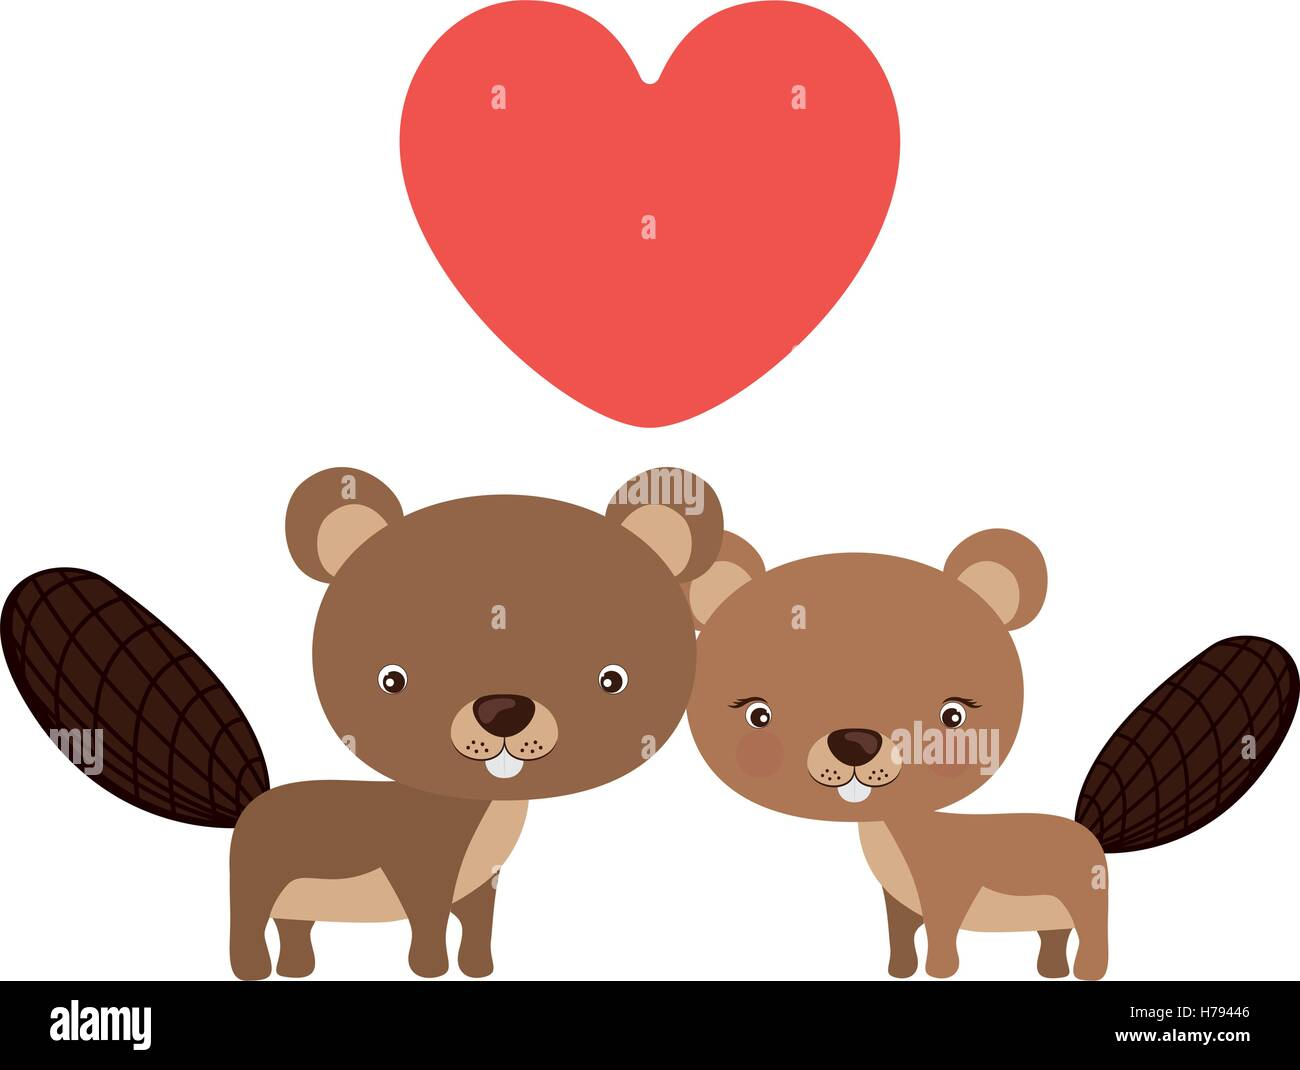 little couple of animals concept about cute beaver in love design